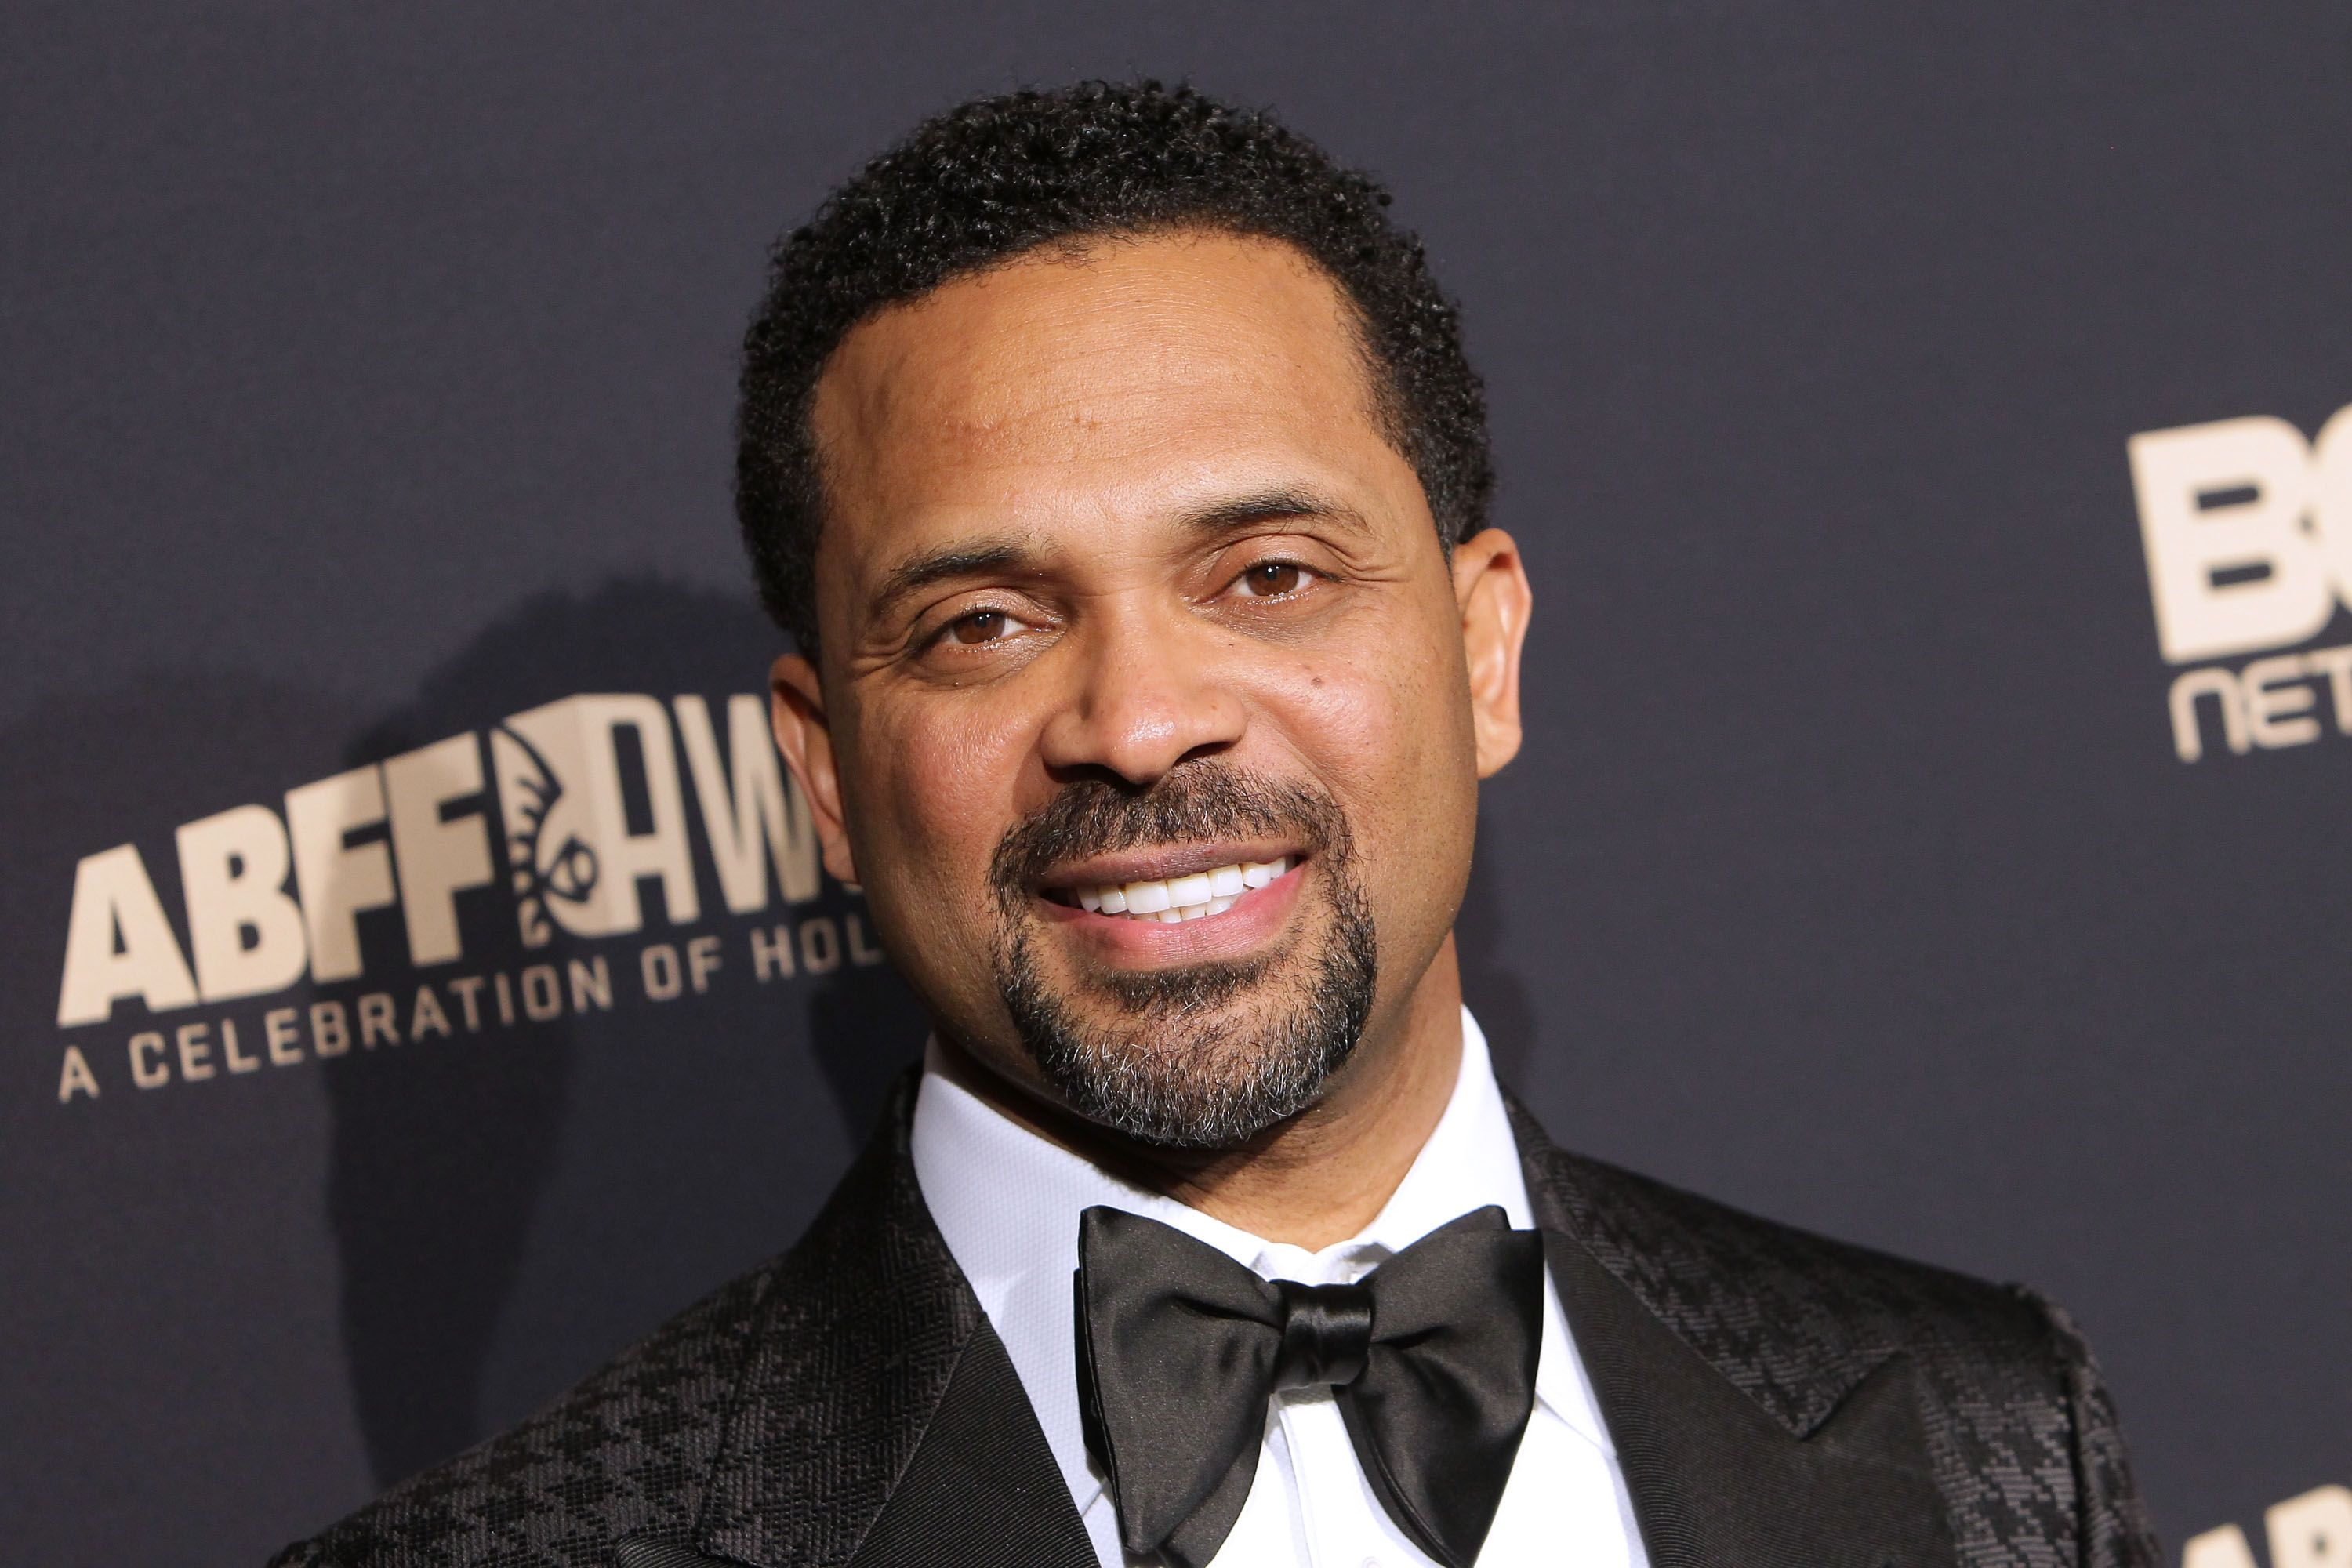 Mike Epps attends the 2016 American Black Film Festival Awards Gala on February 21, 2016 in Beverly Hills, California,  │Photo: WireImage/Leon Bennett